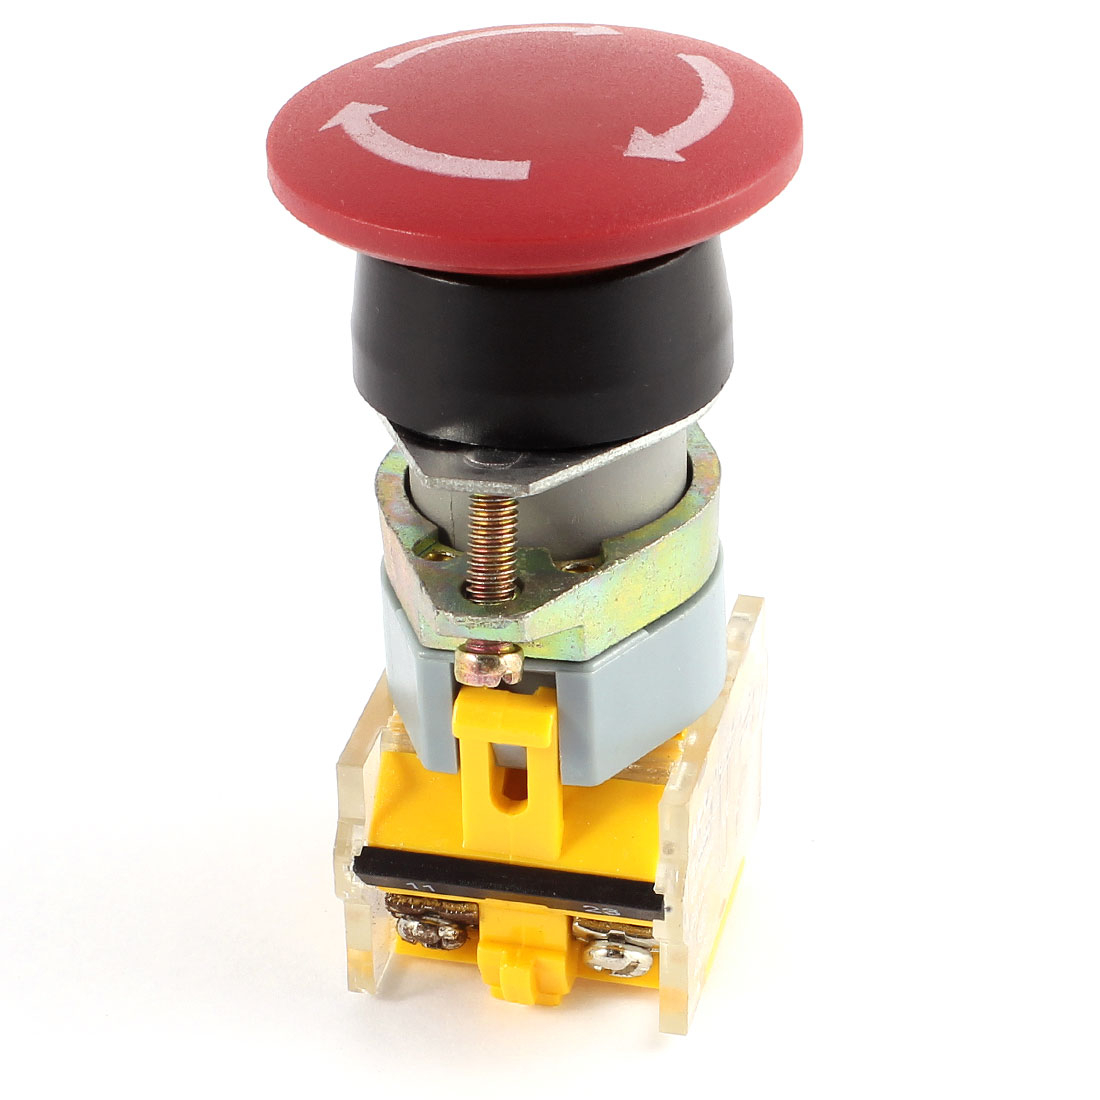 AC 660V 10A DPST Red Mushroom Self-Locking Emergency Stop Push Button Switch